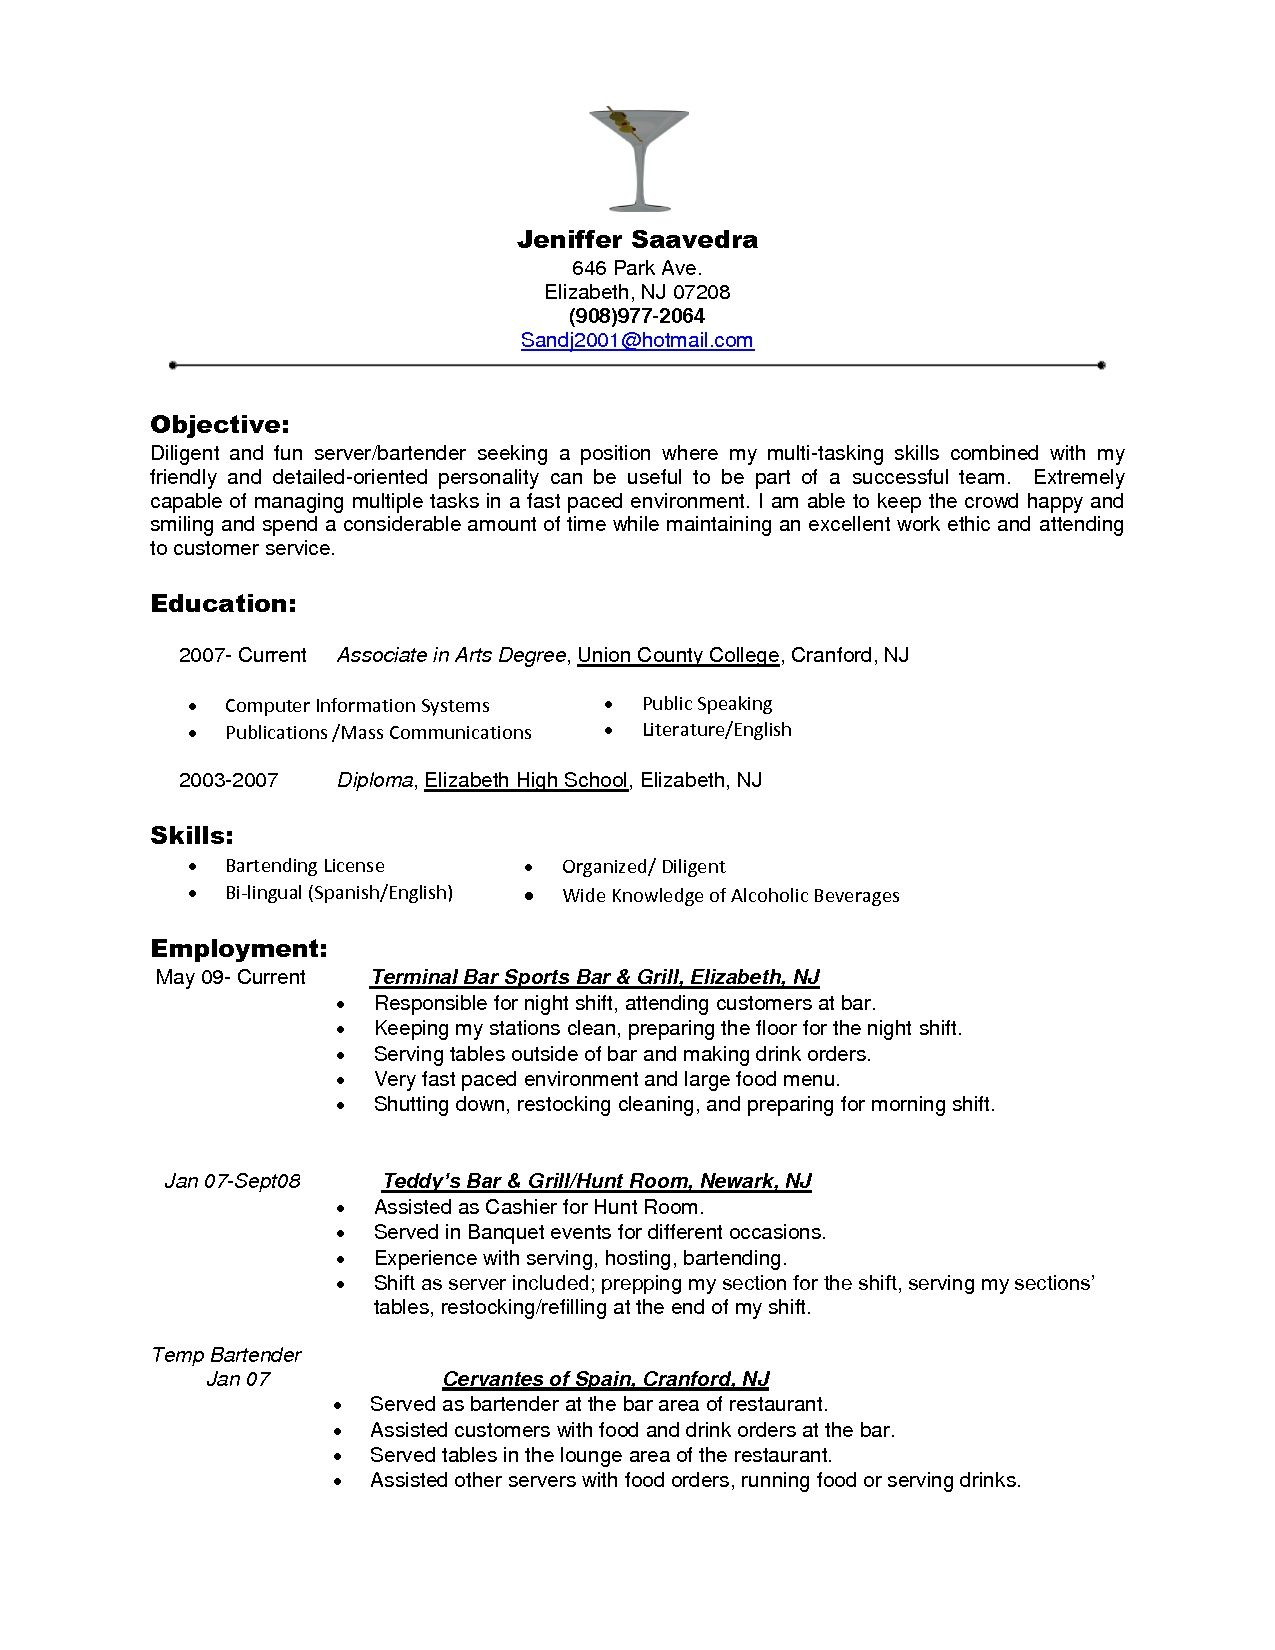 resume Resume To You bartender objectives resume will give ideas and strategies to develop your own